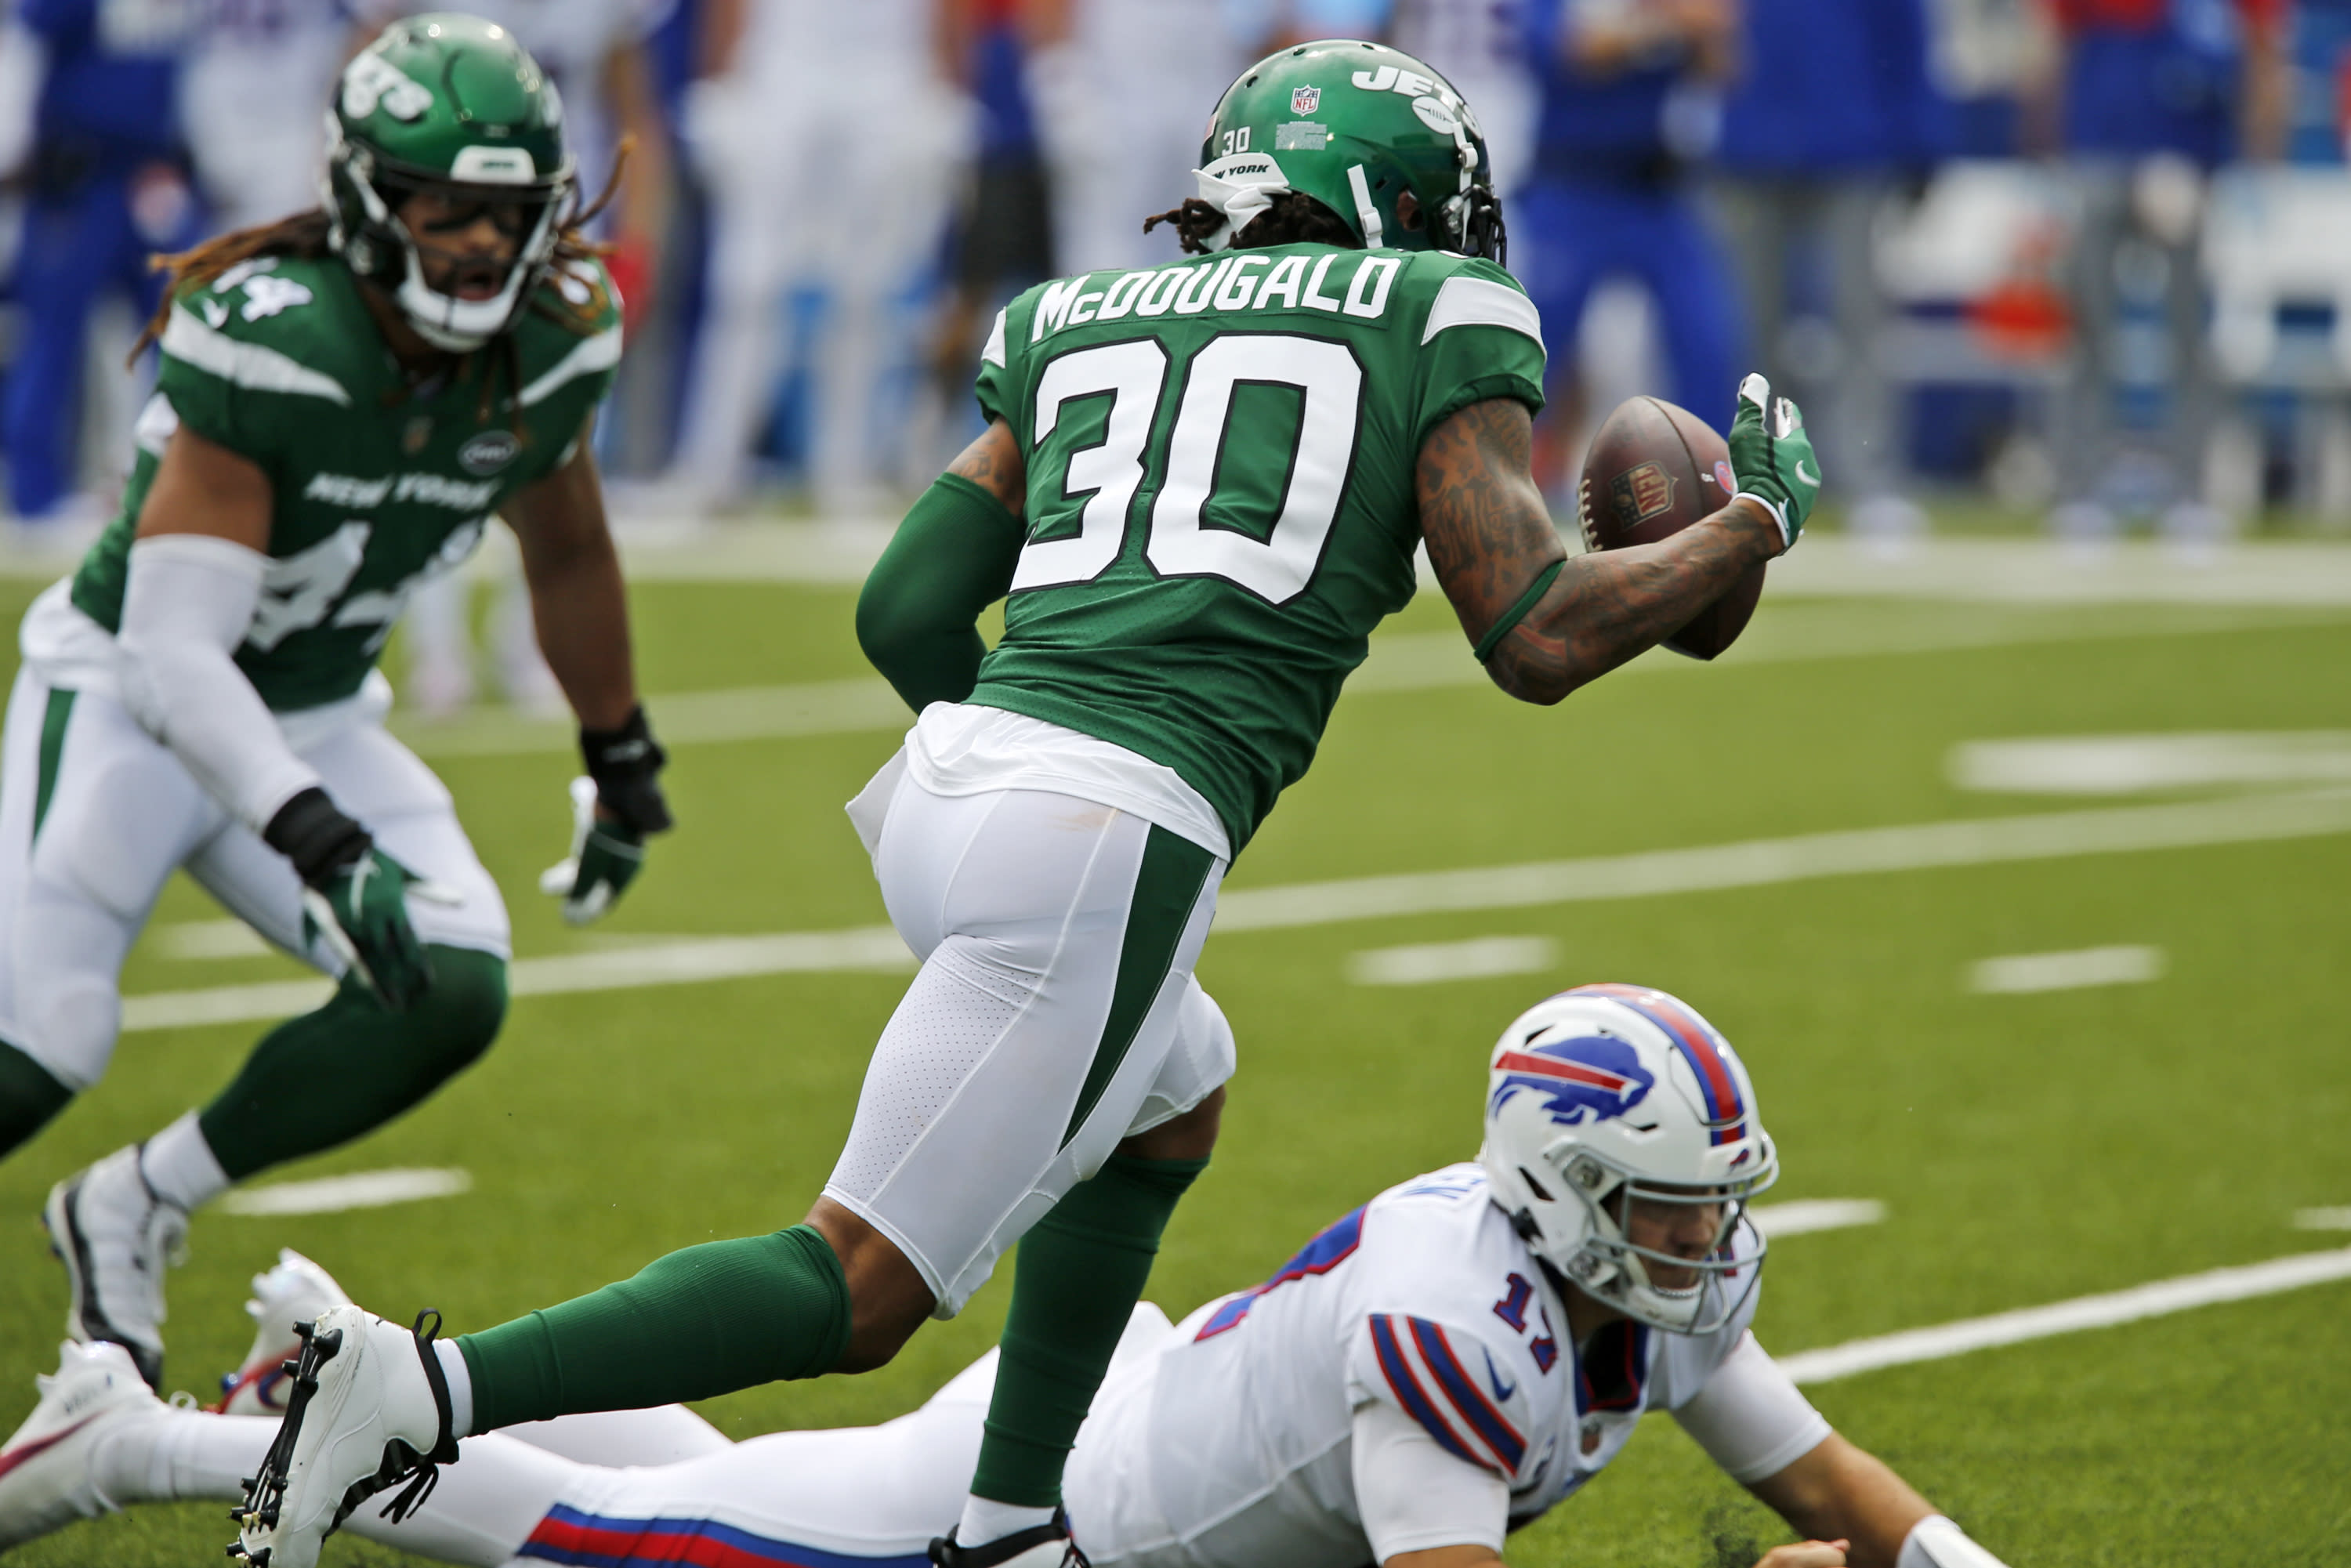 New York Jets strong safety Bradley McDougald (30) recovers a fumble by Buffalo Bills quarterback Josh Allen (17) during the first half of an NFL football game in Orchard Park, N.Y., Sunday, Sept. 13, 2020. (AP Photo/John Munson)